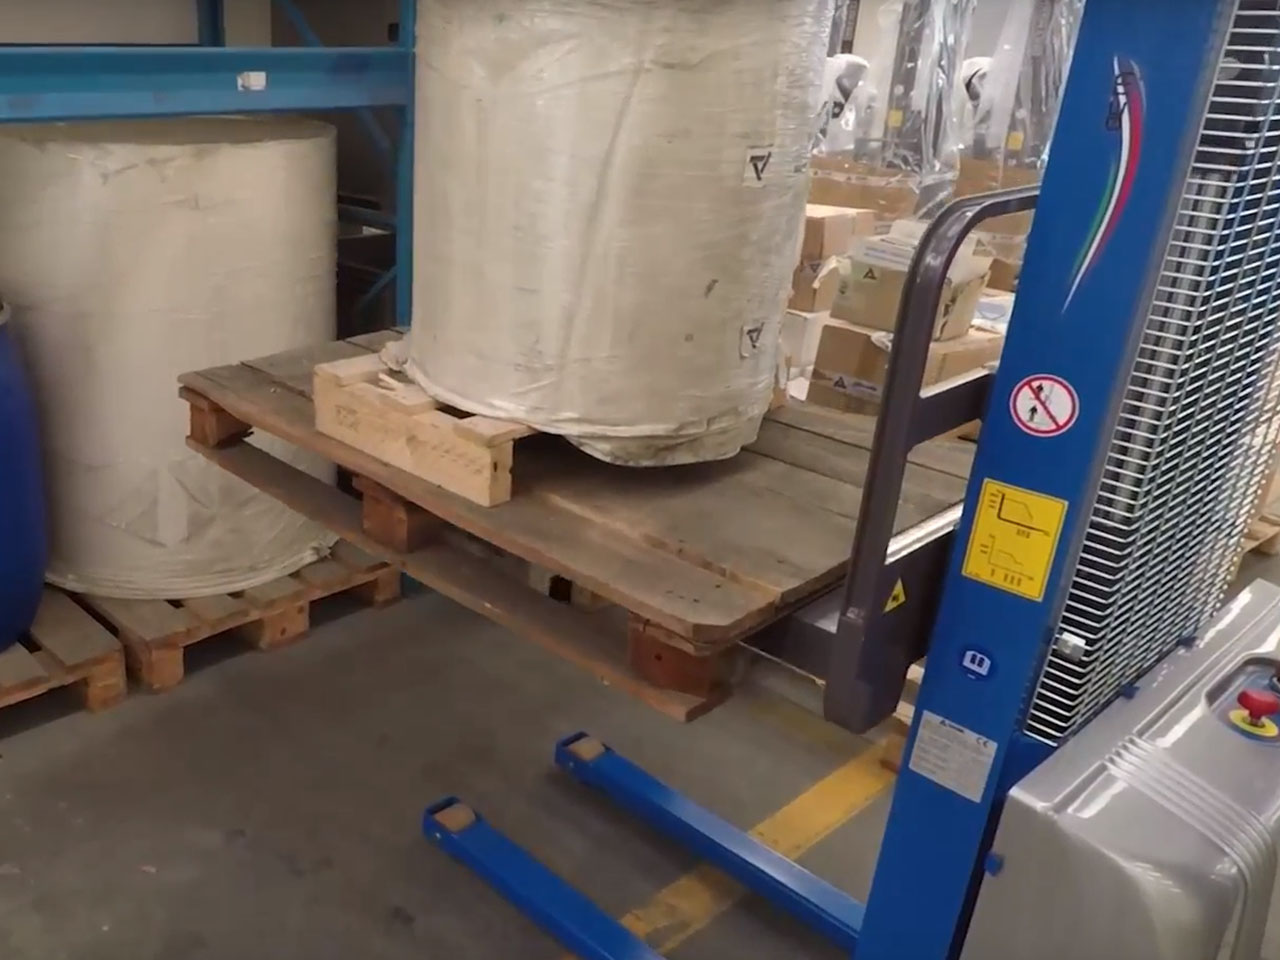 Pallet Stackers - The Forklift Alternative